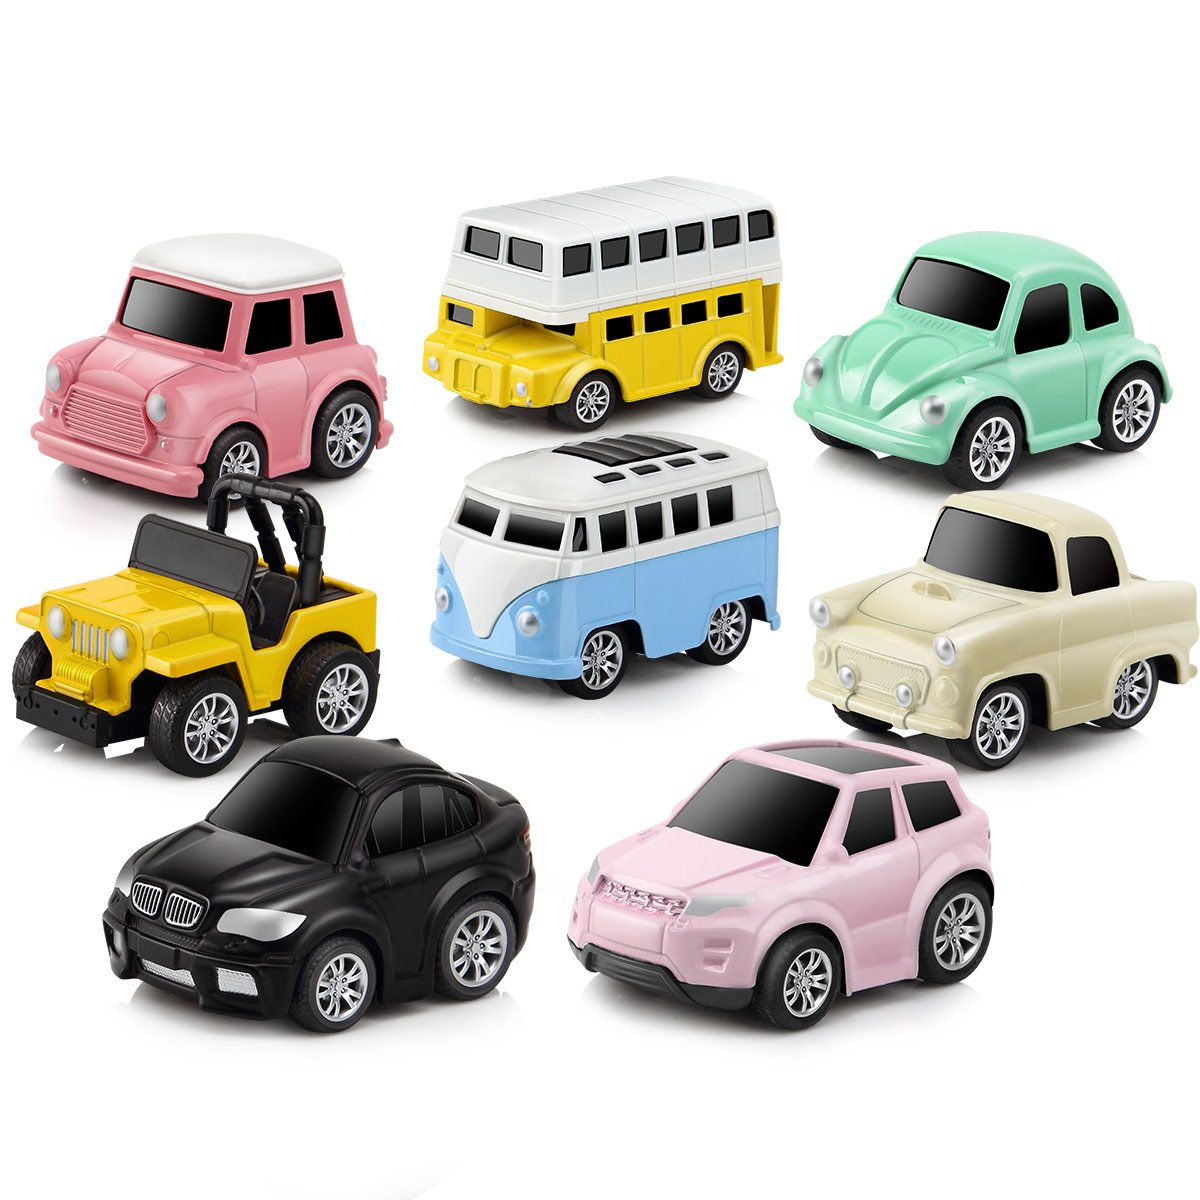 GEYIIE Pull Back Cars Alloy Vehicles Set Mini Car Model Construction and Raced Trucks for Toddlers Gift 8 PCS